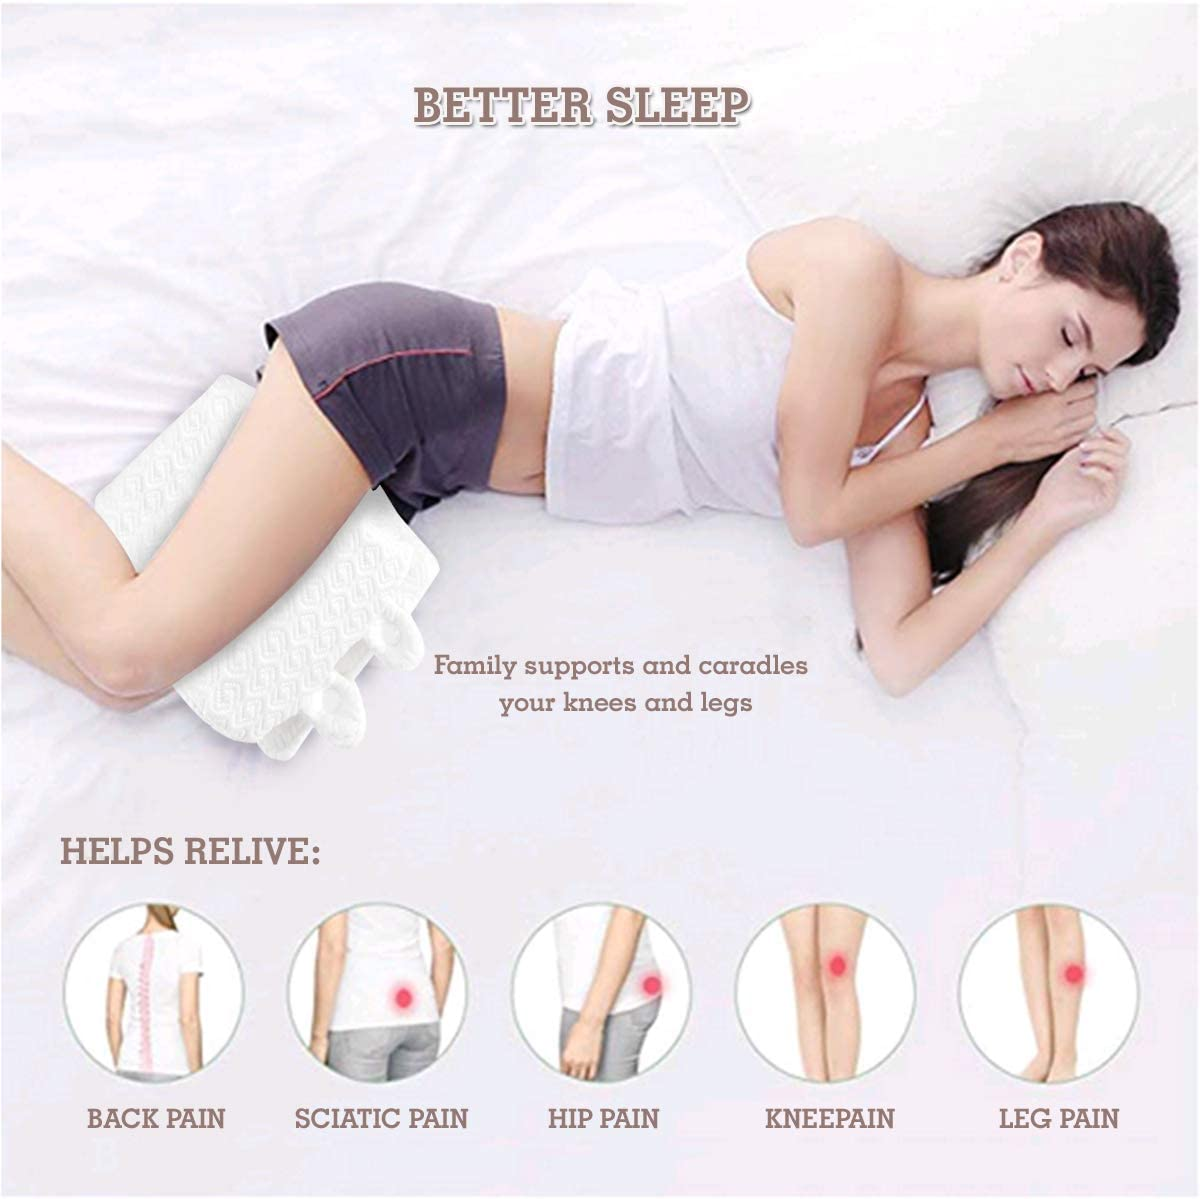 Memory Foam Orthopedic Contour Wedge with Washable Cover Sciatic Nerve Pain Relief Leg Pillow Pregnancy Best for Sciatica TFS TOP /· FANS Knee Pillow for Side Sleepers Back and Spine Alignment